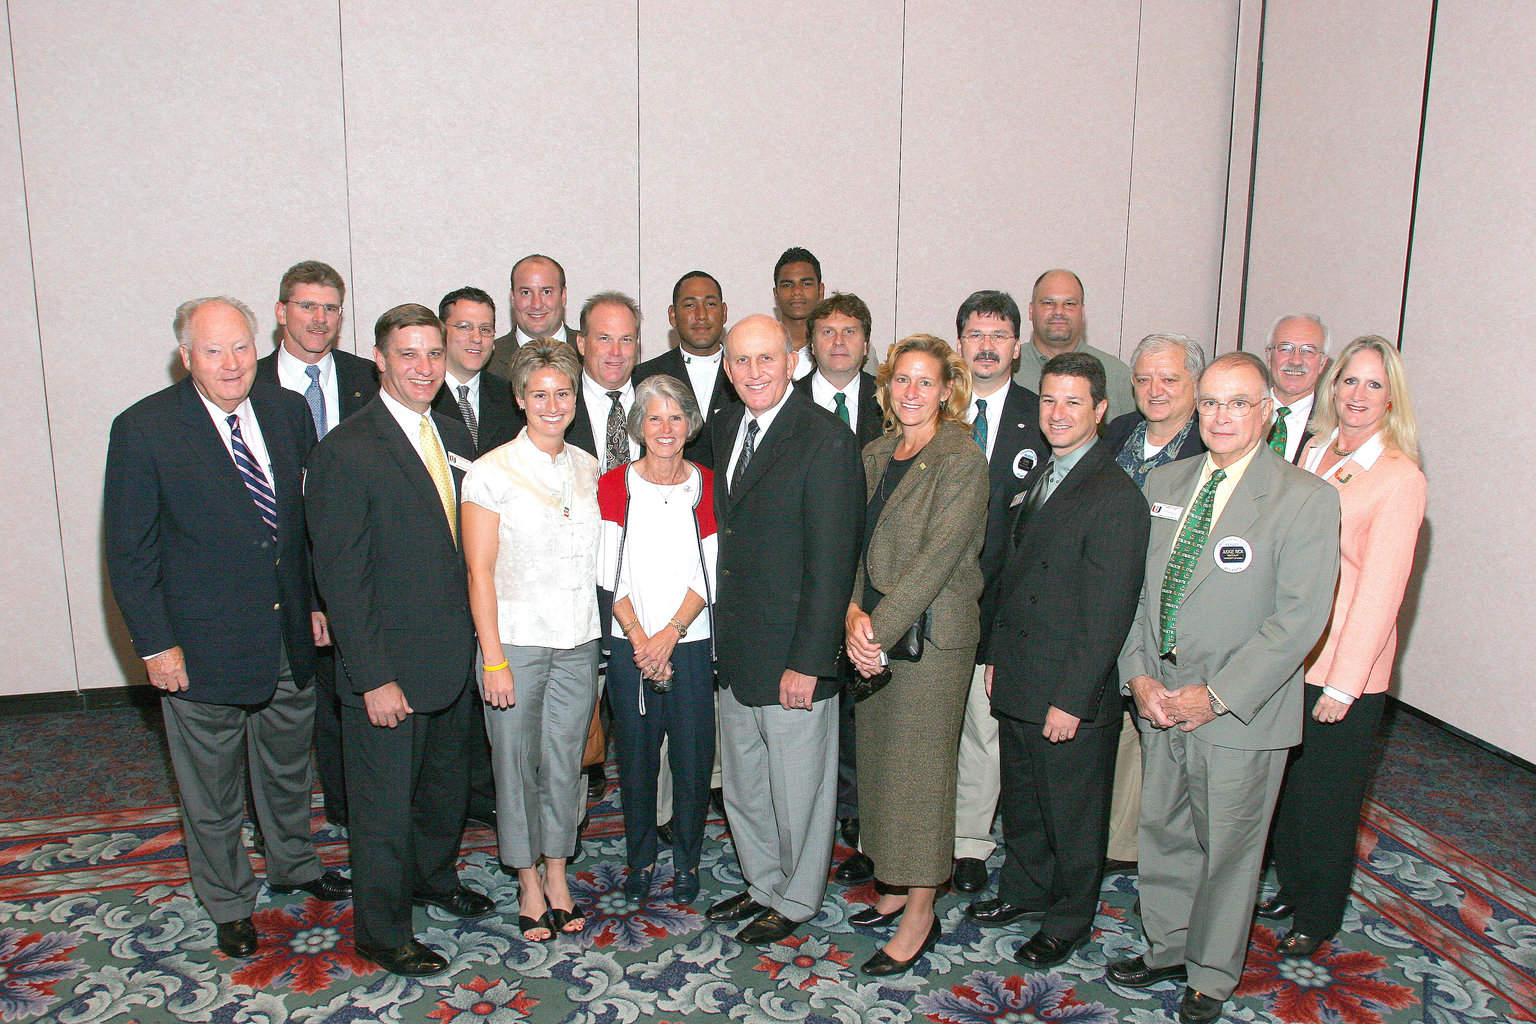 10-4-04 U of M Alumni with Larry Coker